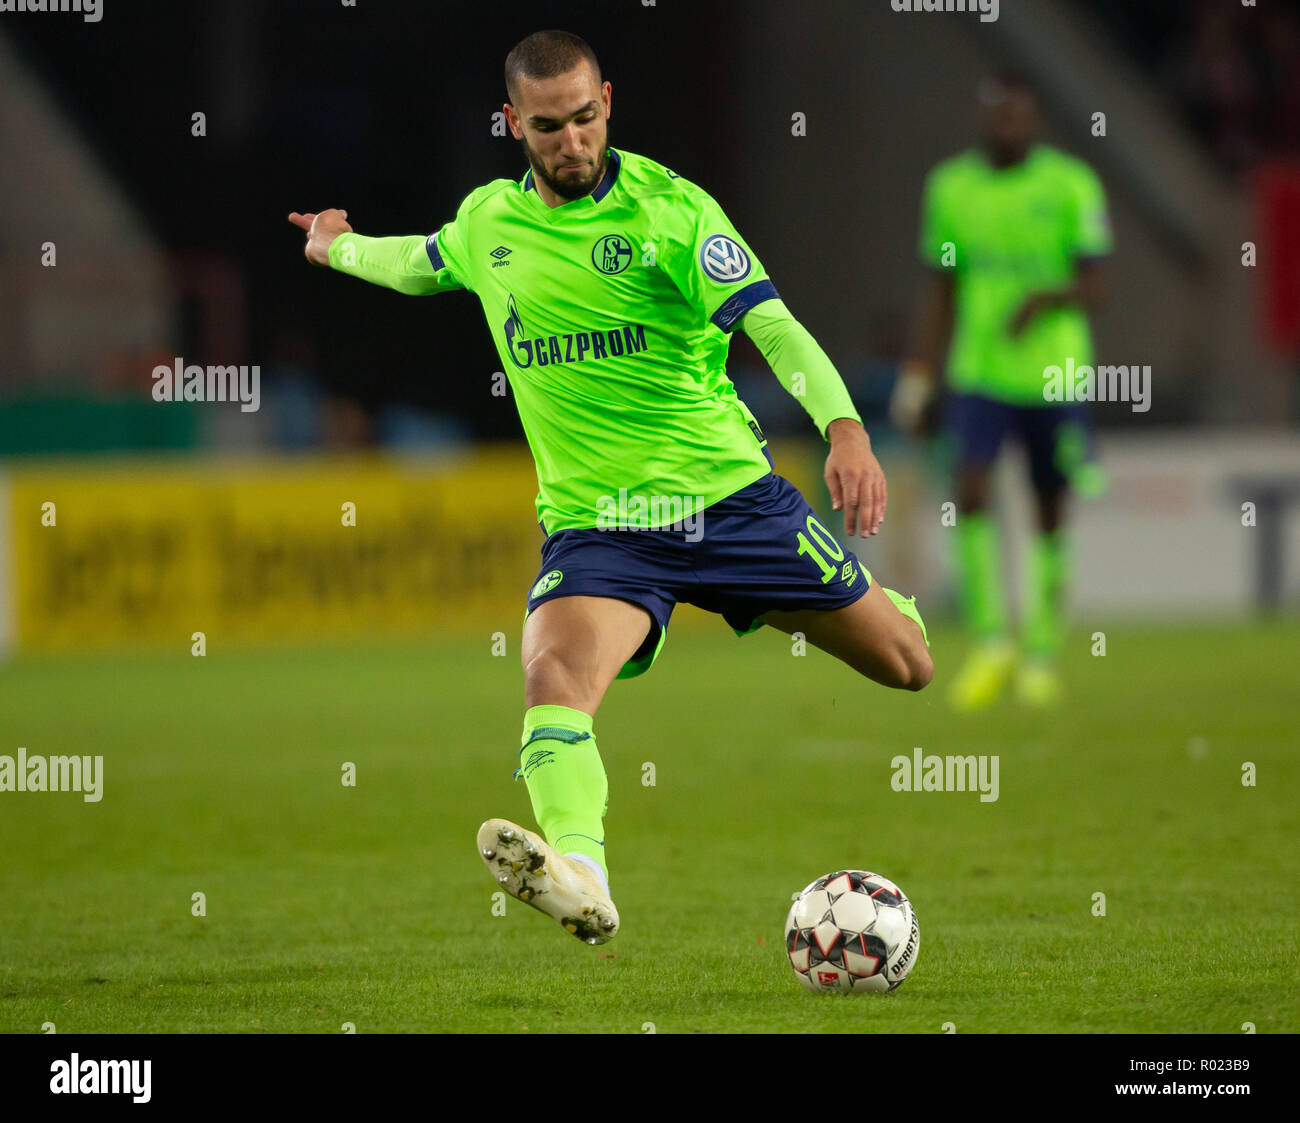 Cologne, Germany October 31 2018, DFB Pokal, FC Koeln - FC Schalke 04: Nabil Bentaleb (S04) in action.                 Credit: Juergen Schwarz/Alamy Live News    DFB REGULATIONS PROHIBIT ANY USE OF PHOTOGRAPHS AS IMAGE SEQUENCES AND/OR QUASI-VIDEO Credit: Juergen Schwarz/Alamy Live News - Stock Image